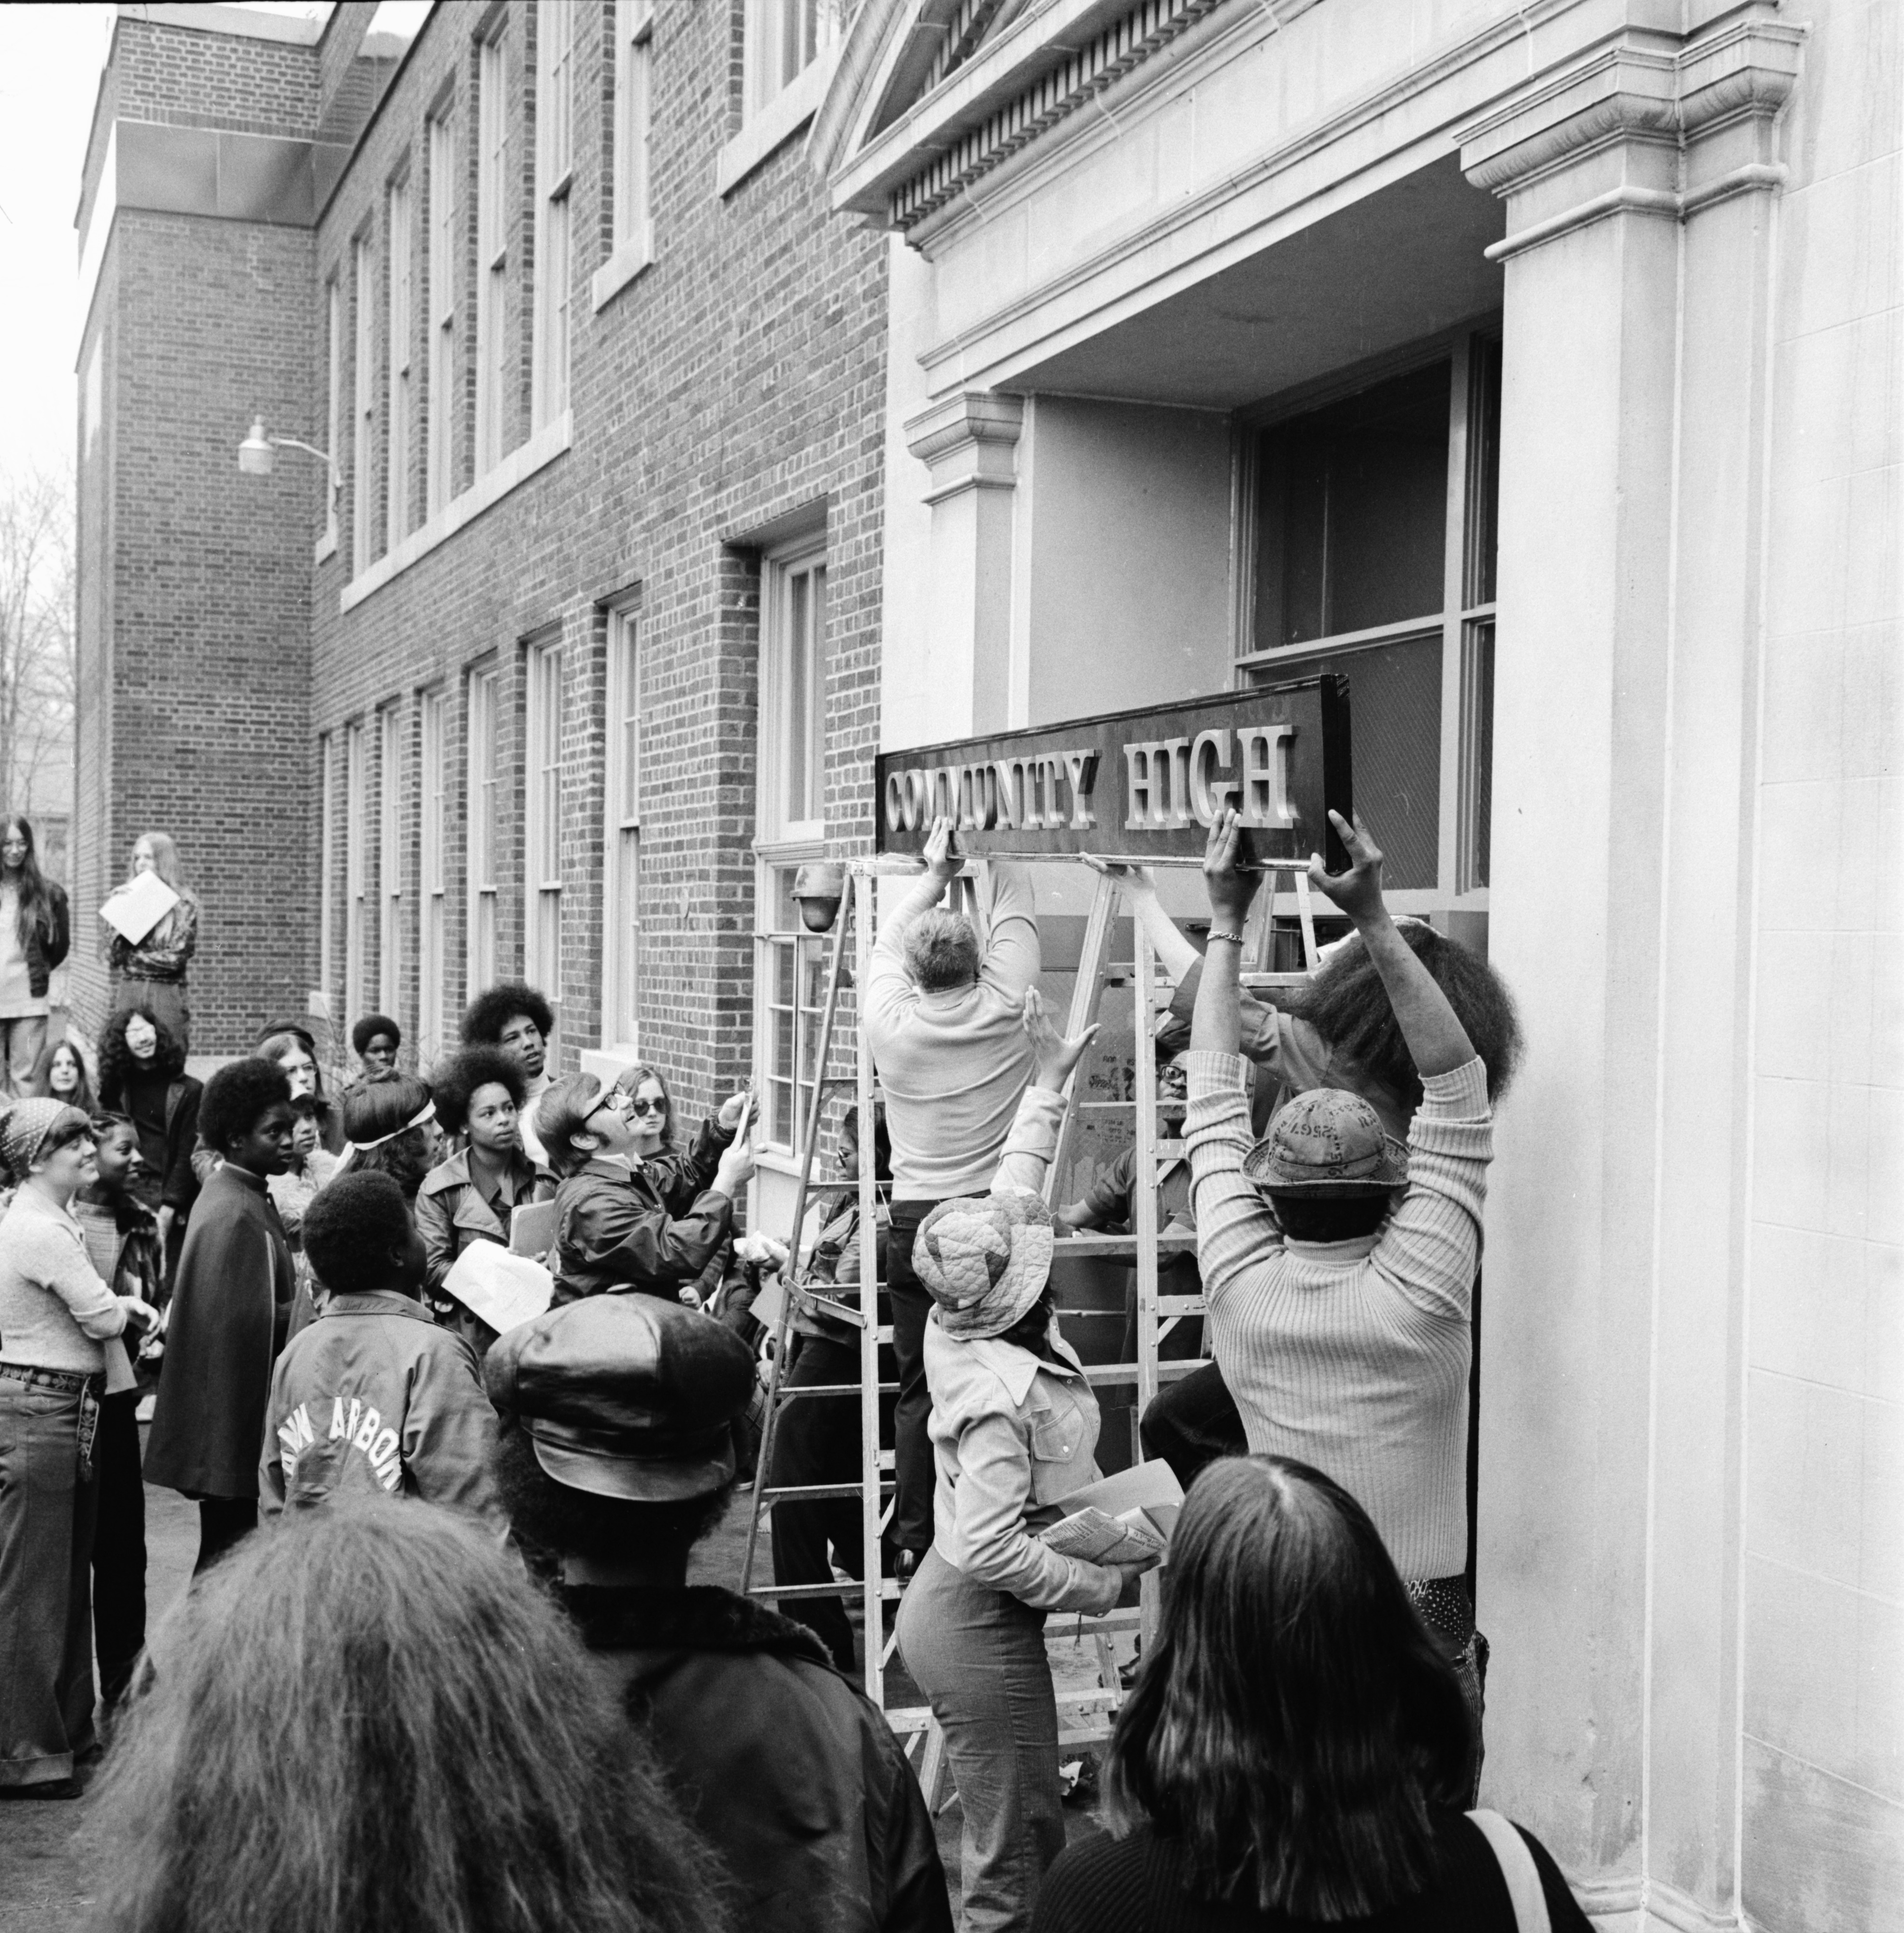 Putting up the 'Community High' nameplate at 401 N. Division, April 1974 image